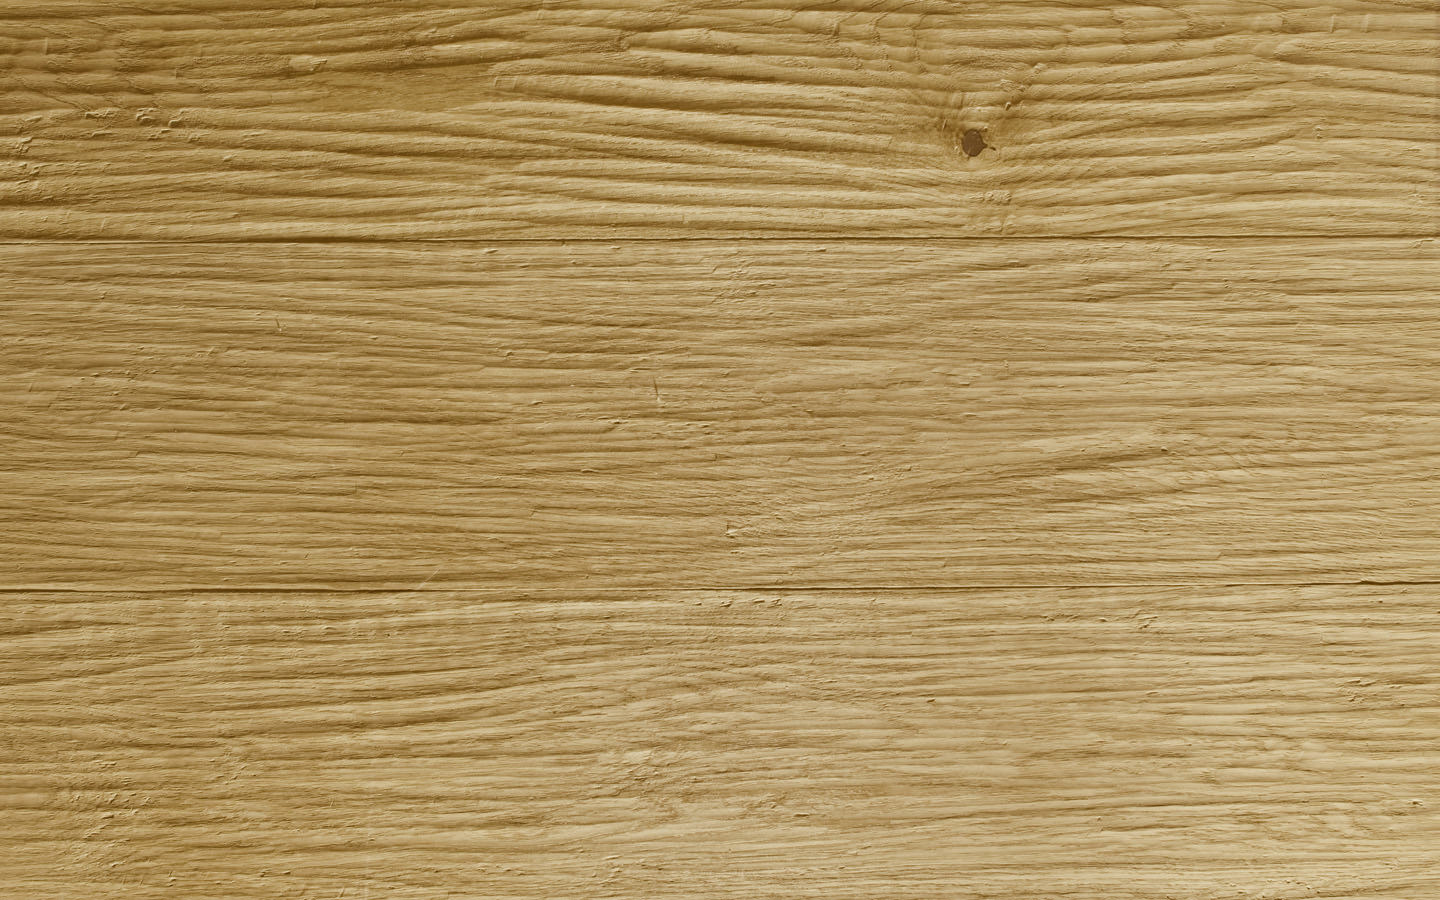 Château by adler - Oak Blanc standard hand scrapped natural oiled - 19 x 180-350 x 1800-5000 mm